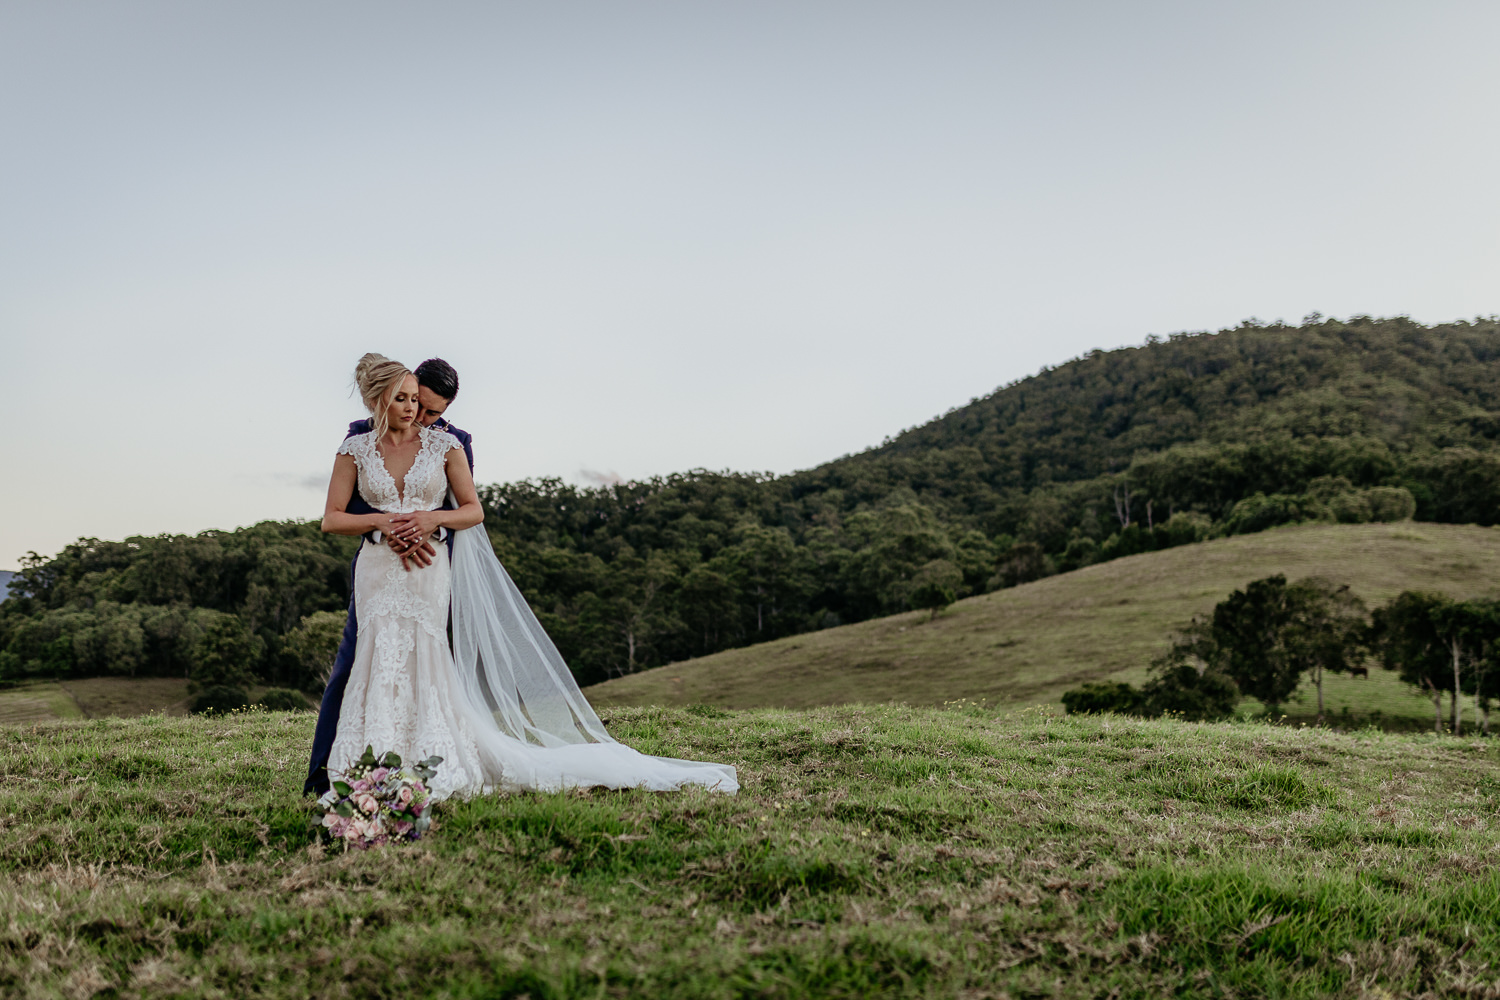 True-North-Photography-Cowbell-Creek-Gold-Coast-wedding-photographer-87.jpg